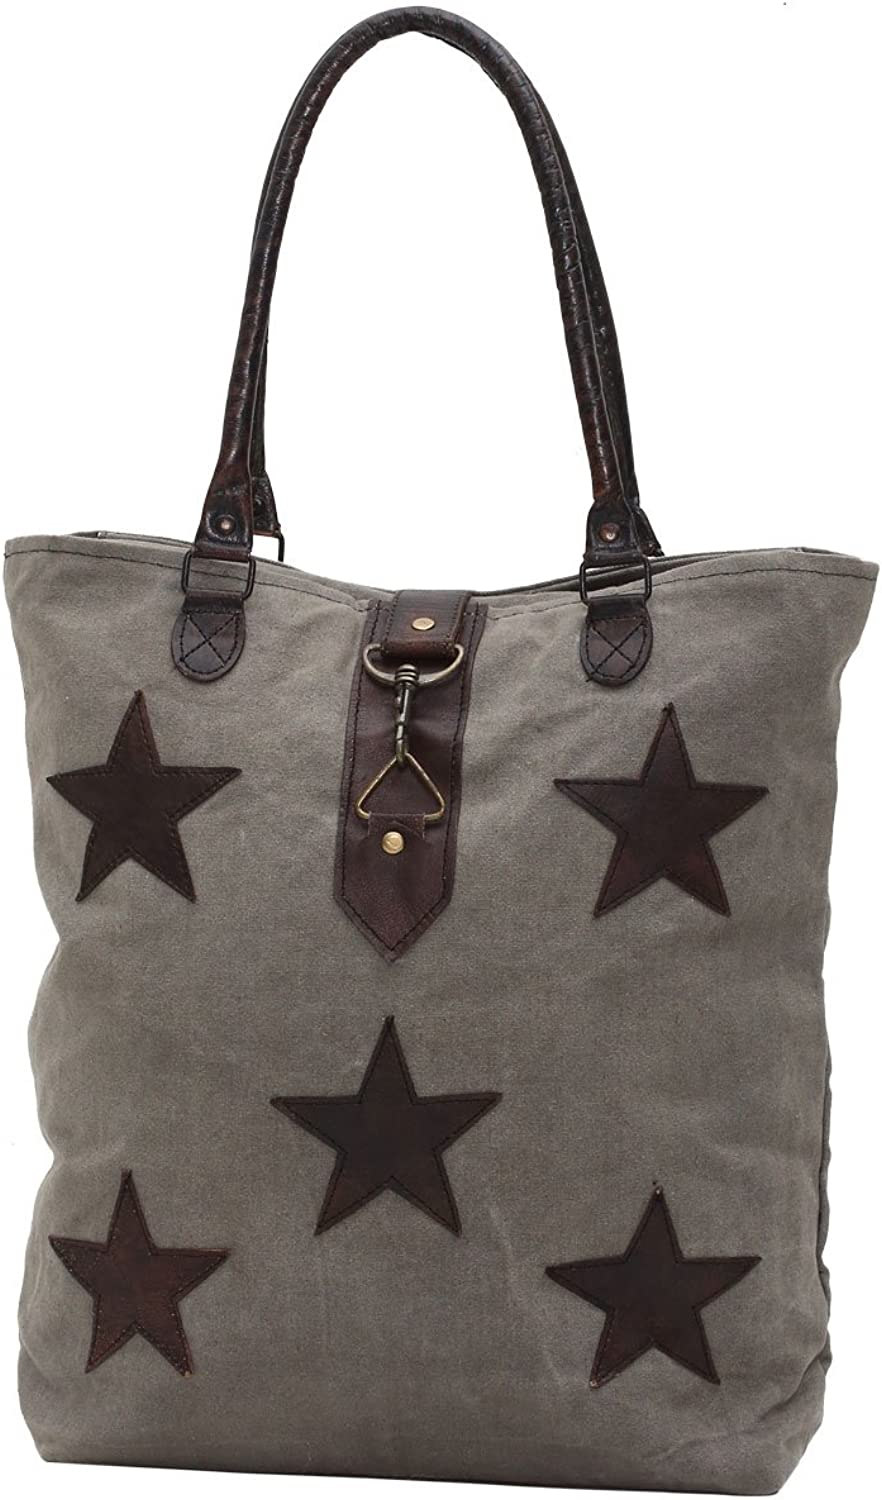 Myra Bags Stardom Upcycled Canvas Tote Bag M0805